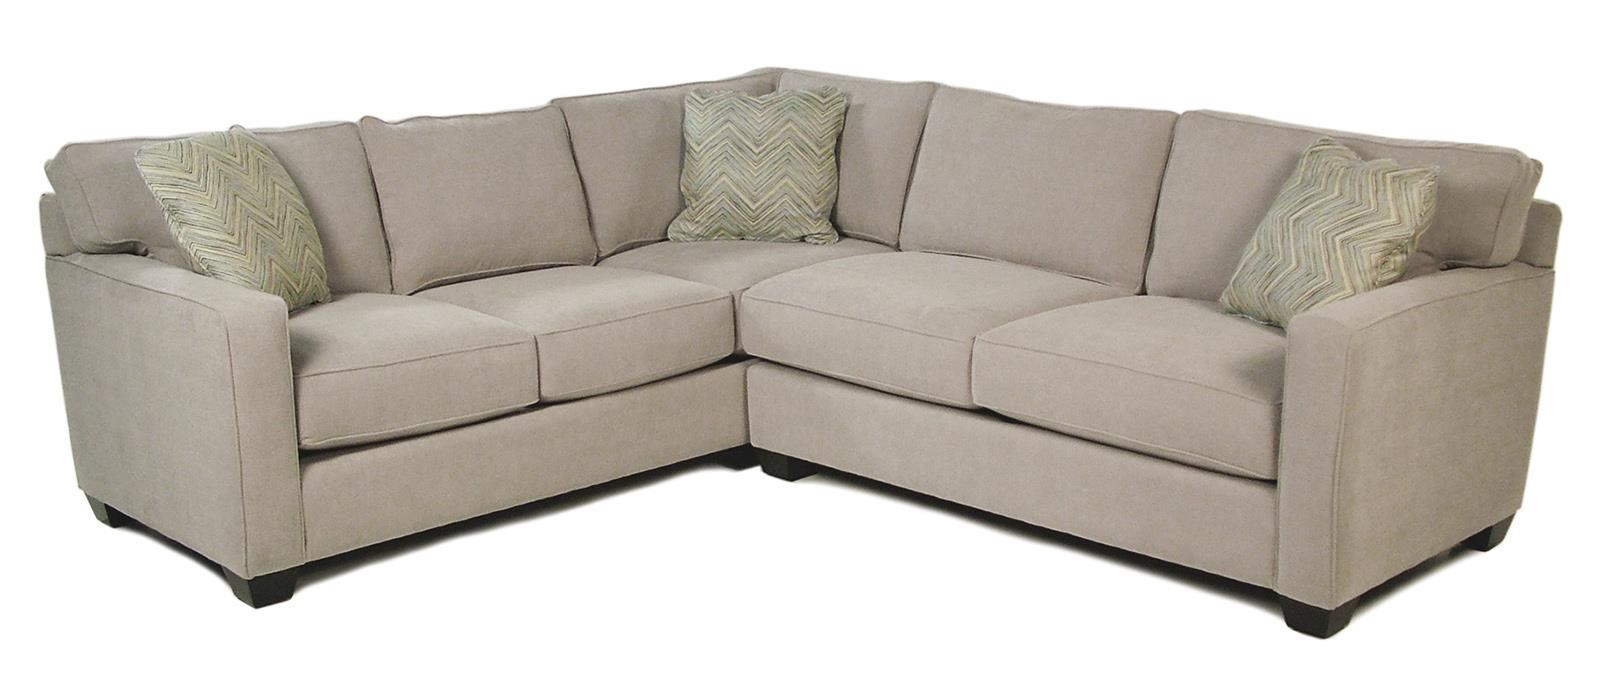 Jonathan Louis Heavenly 2 Piece Stationary Sectional   Item Number:  176632L+626R